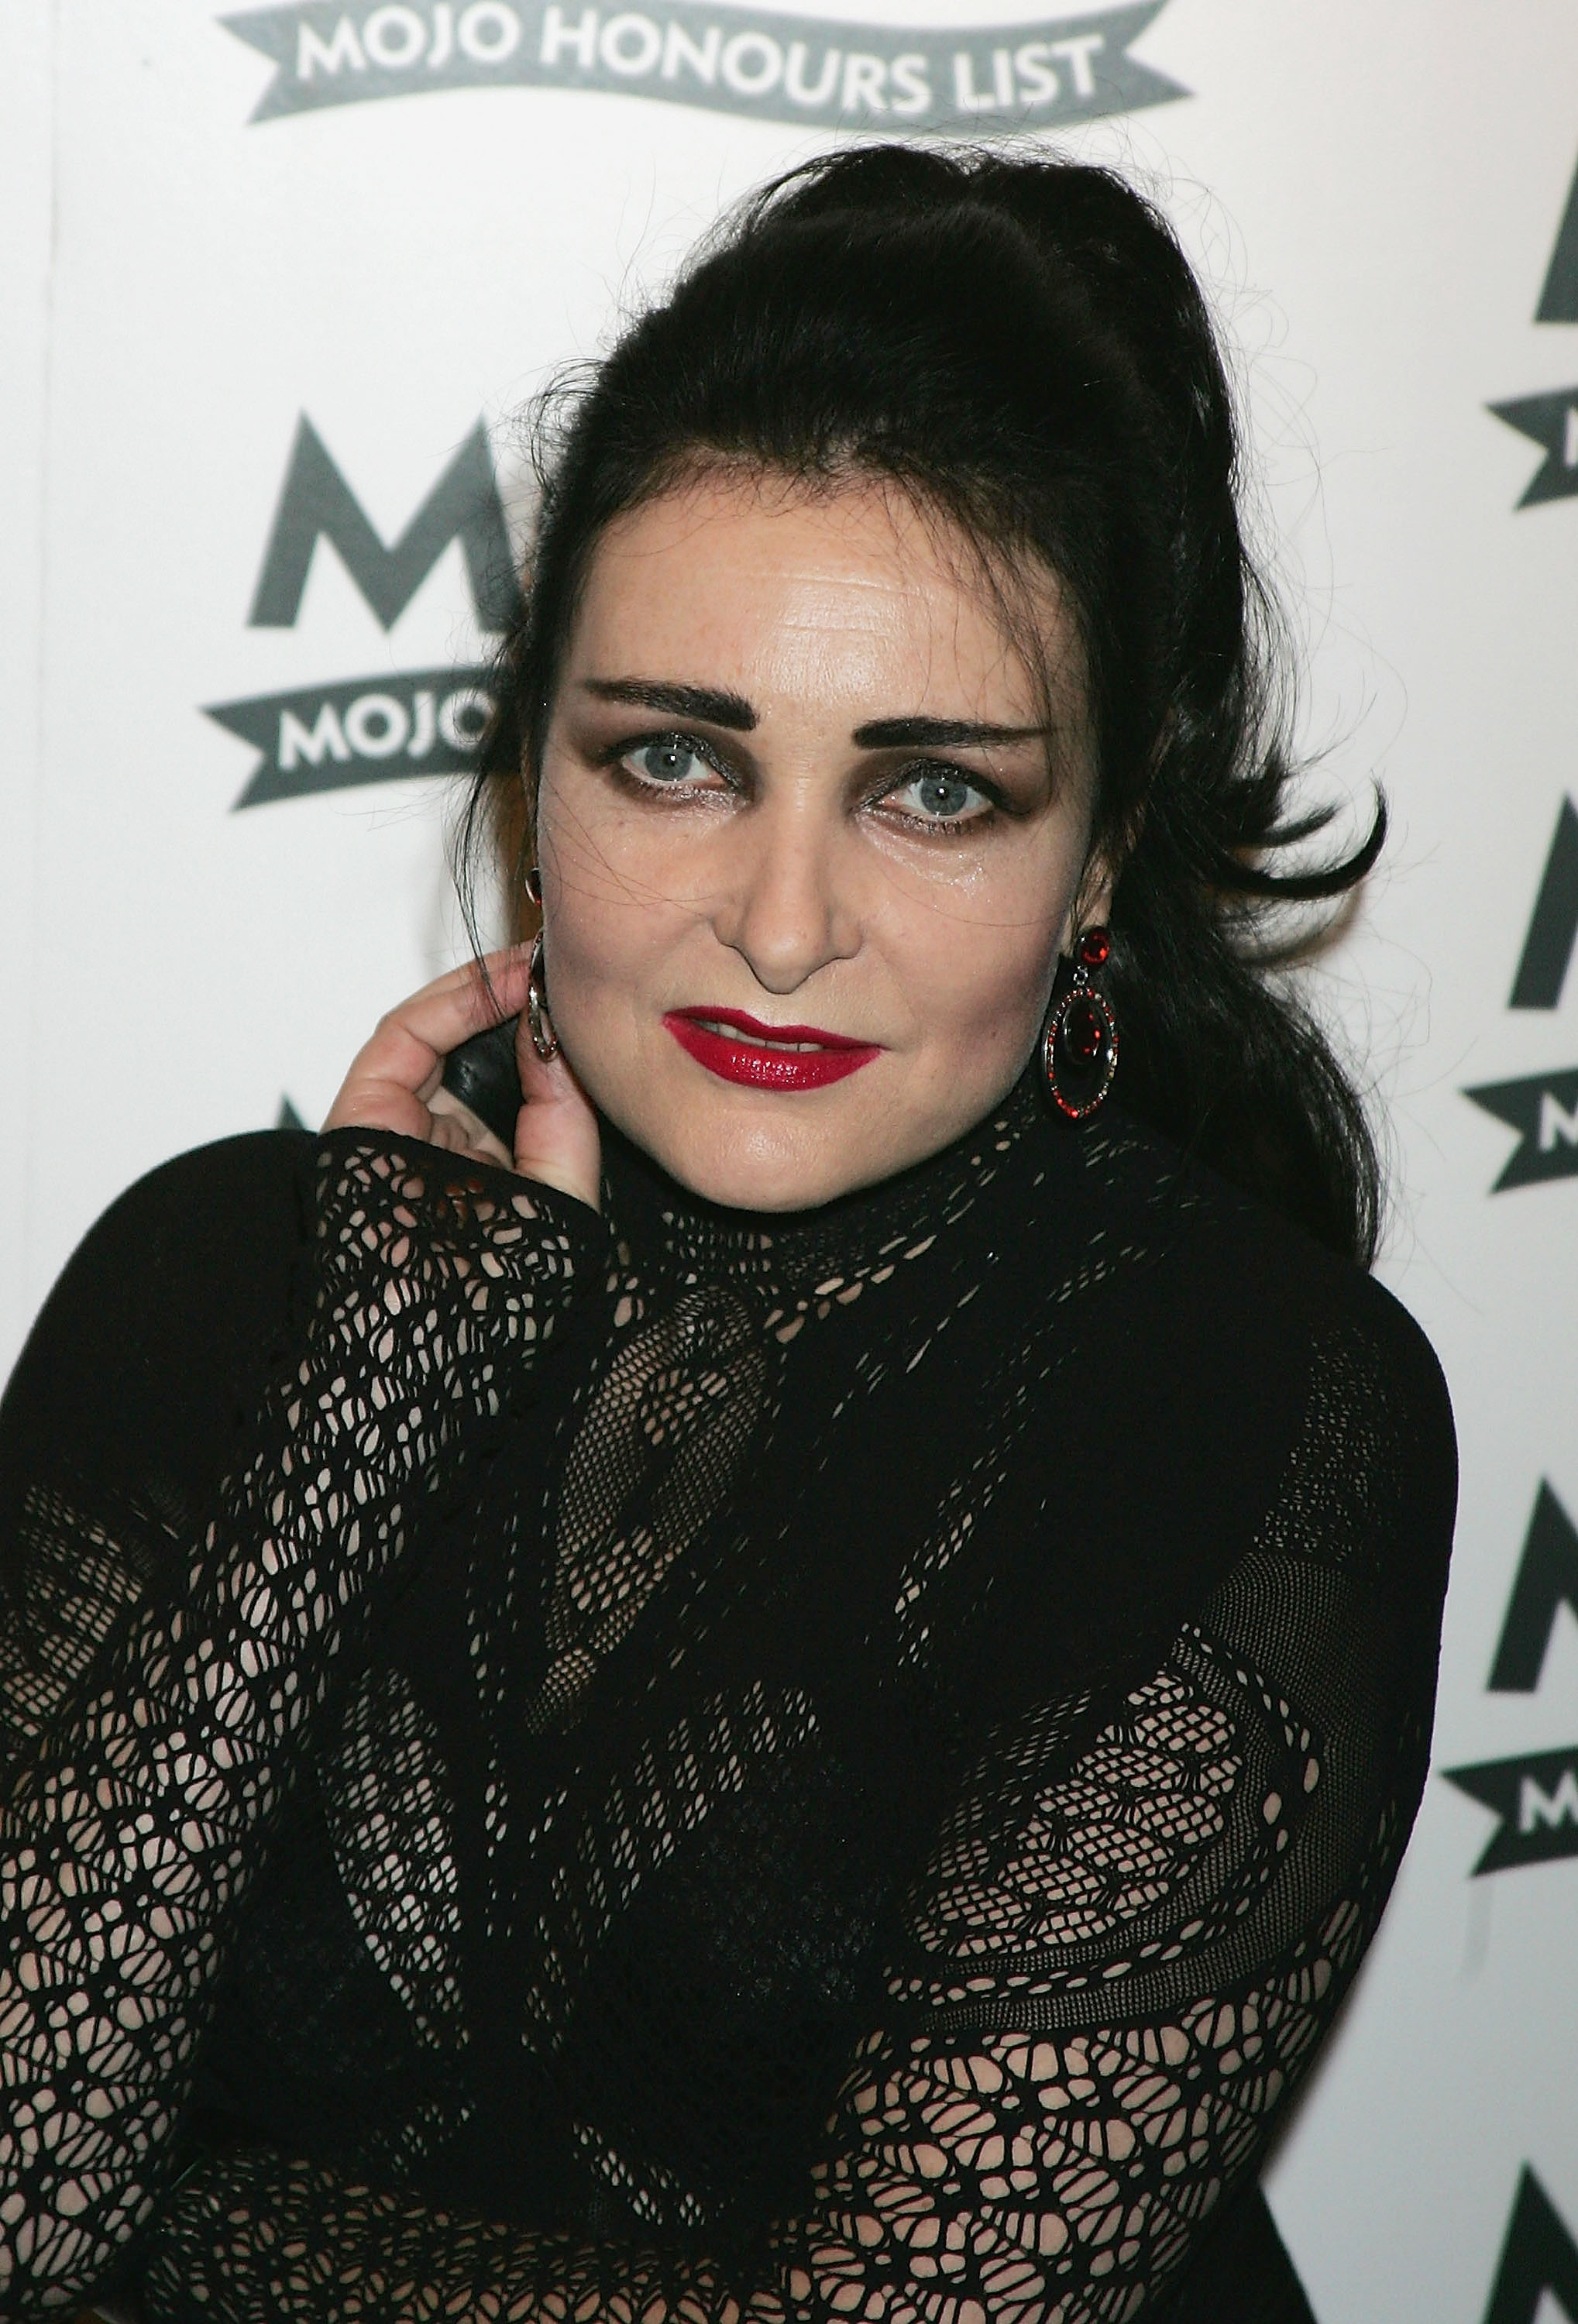 Siouxsie Sioux arrives at The MOJO Honours List 2005, the music magazine's second annual awards, at Porchester Hall on June 16, 2005 in London, England. The Honours List of 10 awards recognises 'career-long contributions to popular music' (Getty Images)